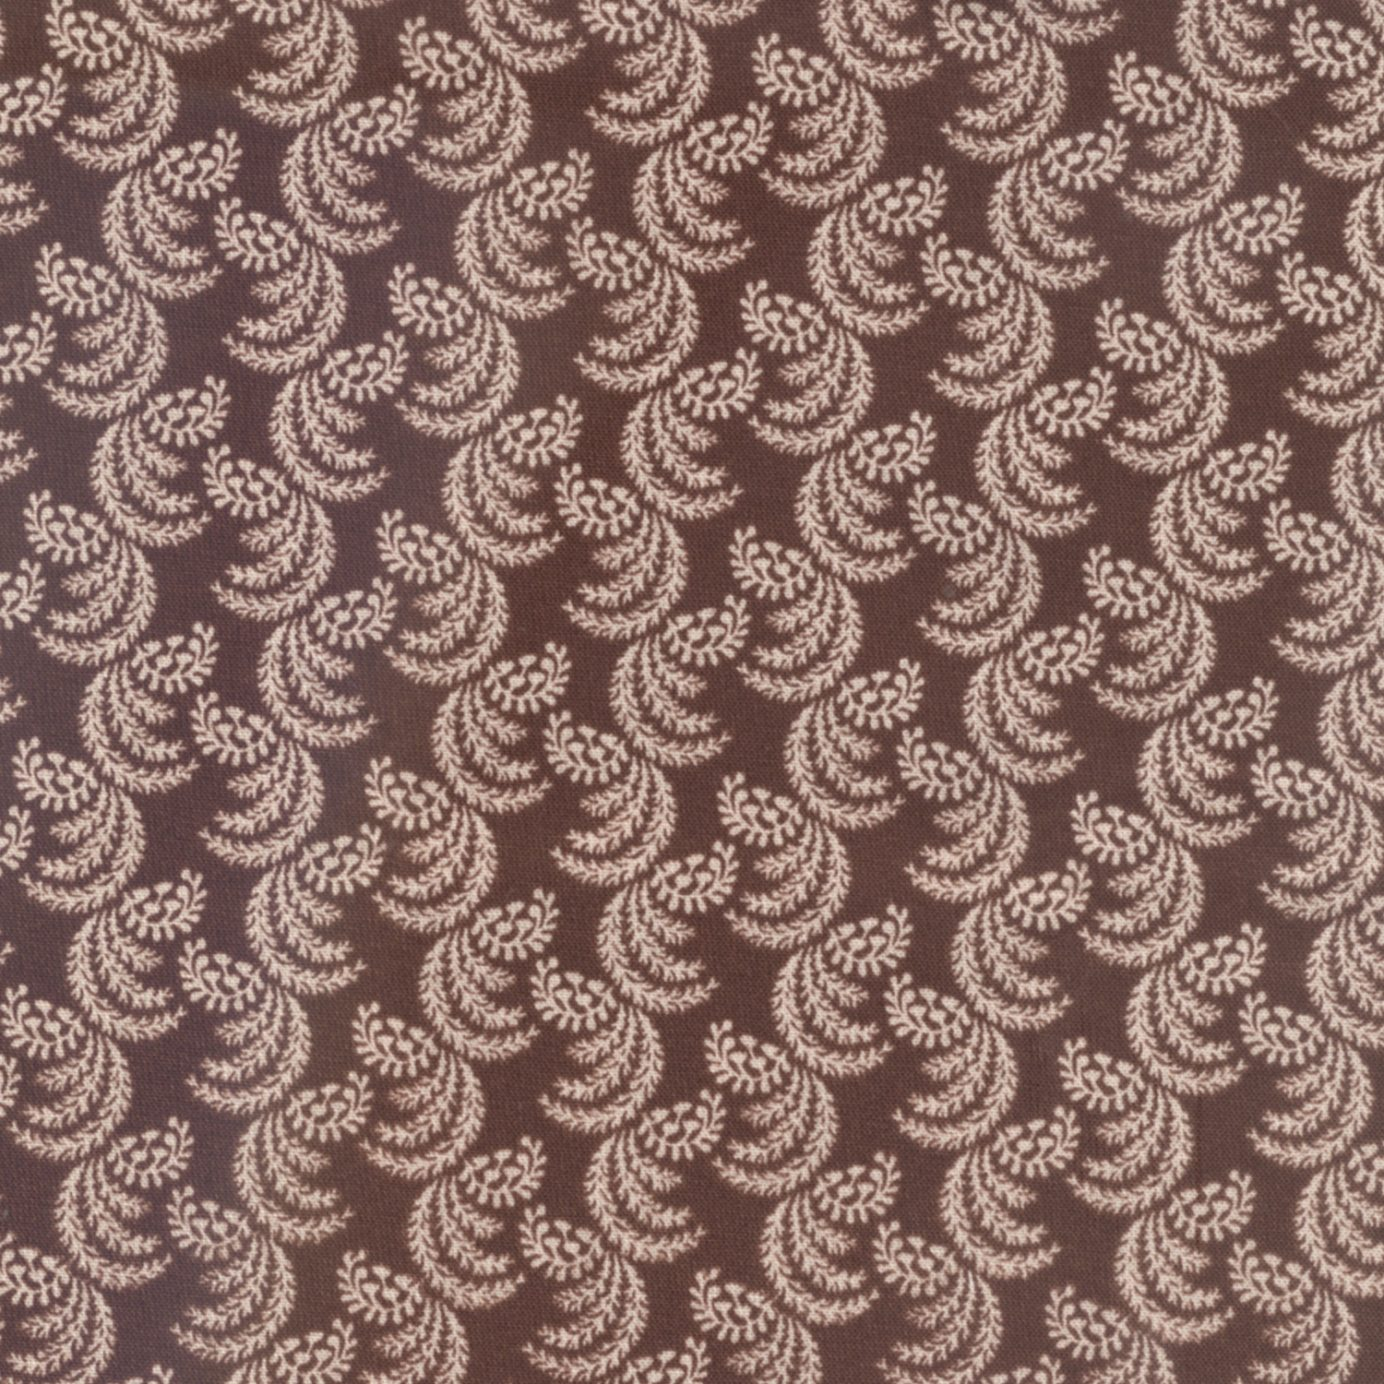 jefferson-feathers-brown-c6162-brown